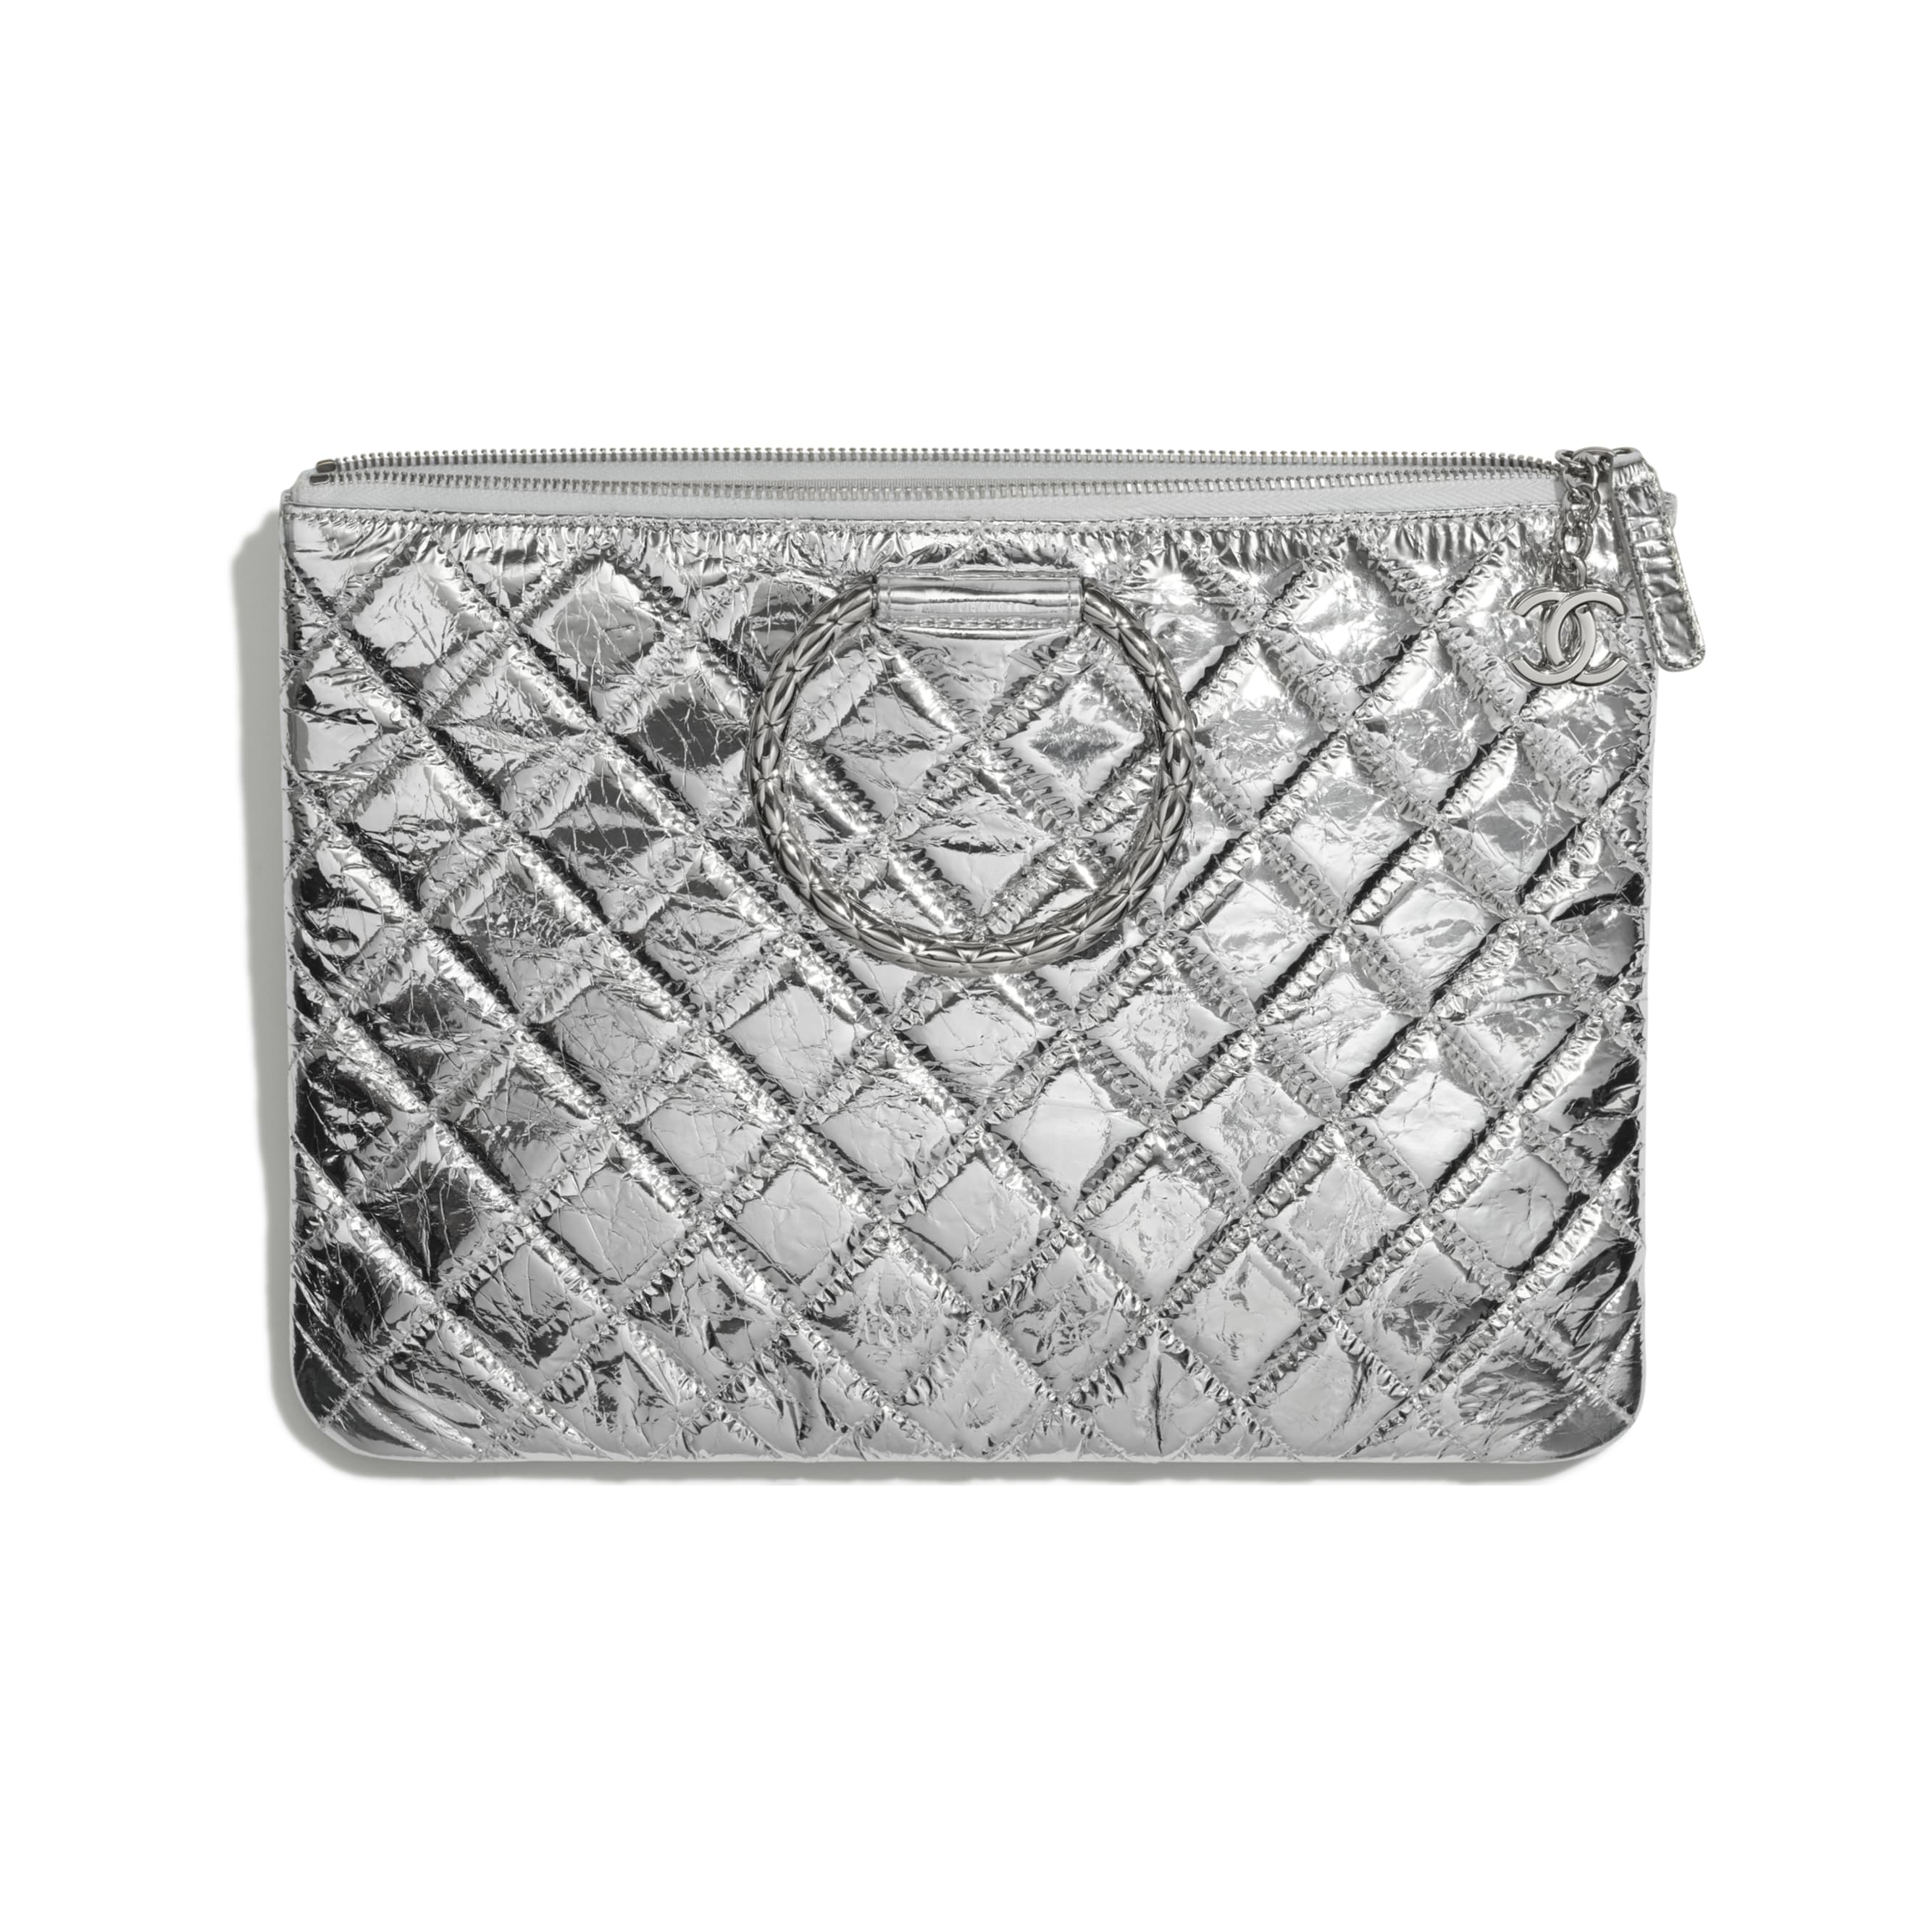 Pouch - Silver - Metallic Crumpled Goatskin & Silver-Tone Metal - CHANEL - Other view - see standard sized version